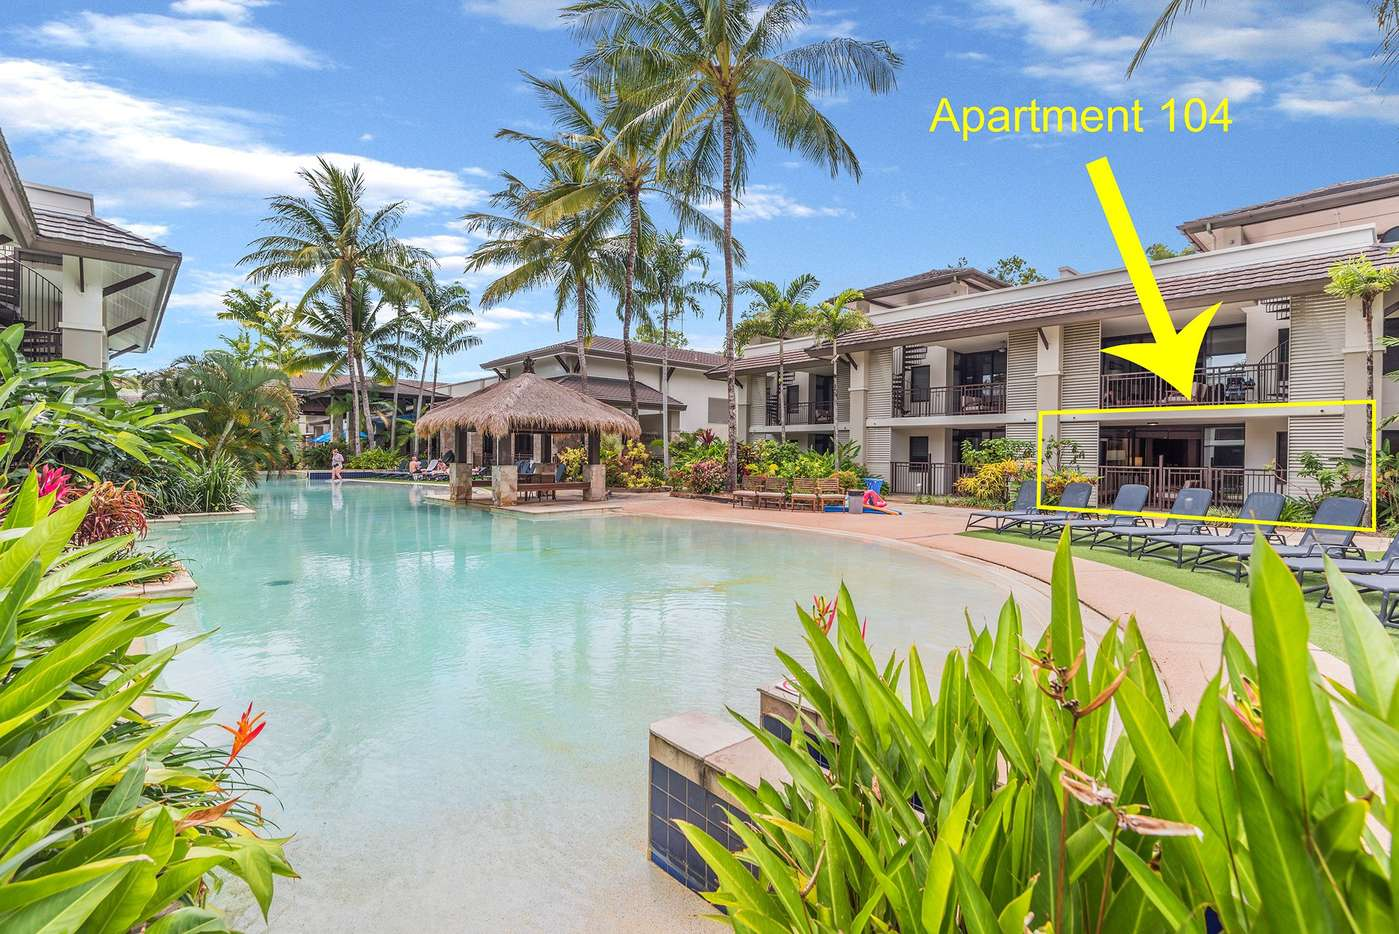 Main view of Homely apartment listing, 104/22-36 Mitre Street, Port Douglas, QLD 4877